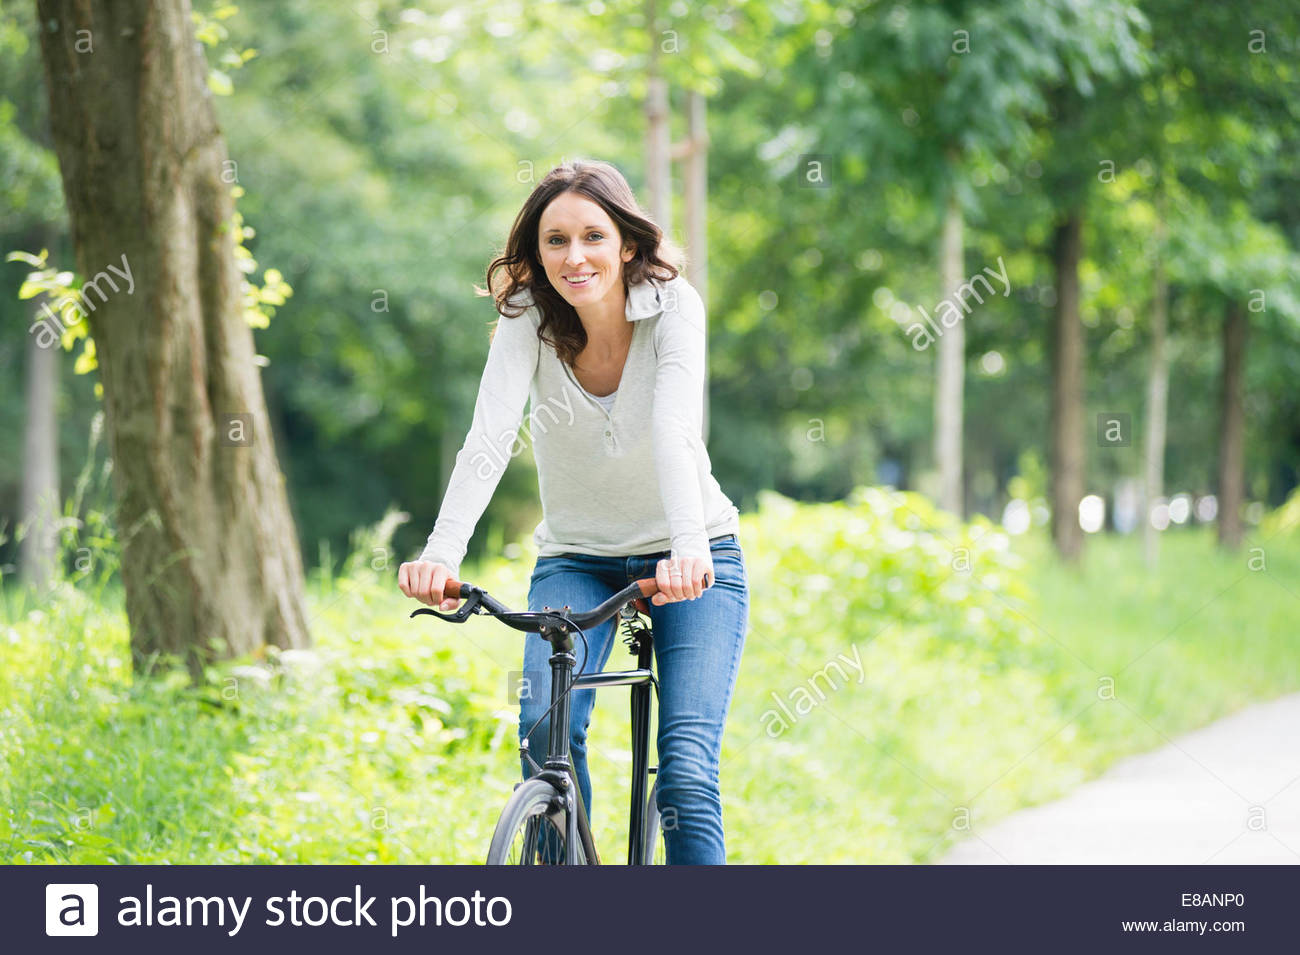 Portrait of mid adult woman cycling in park - Stock Image